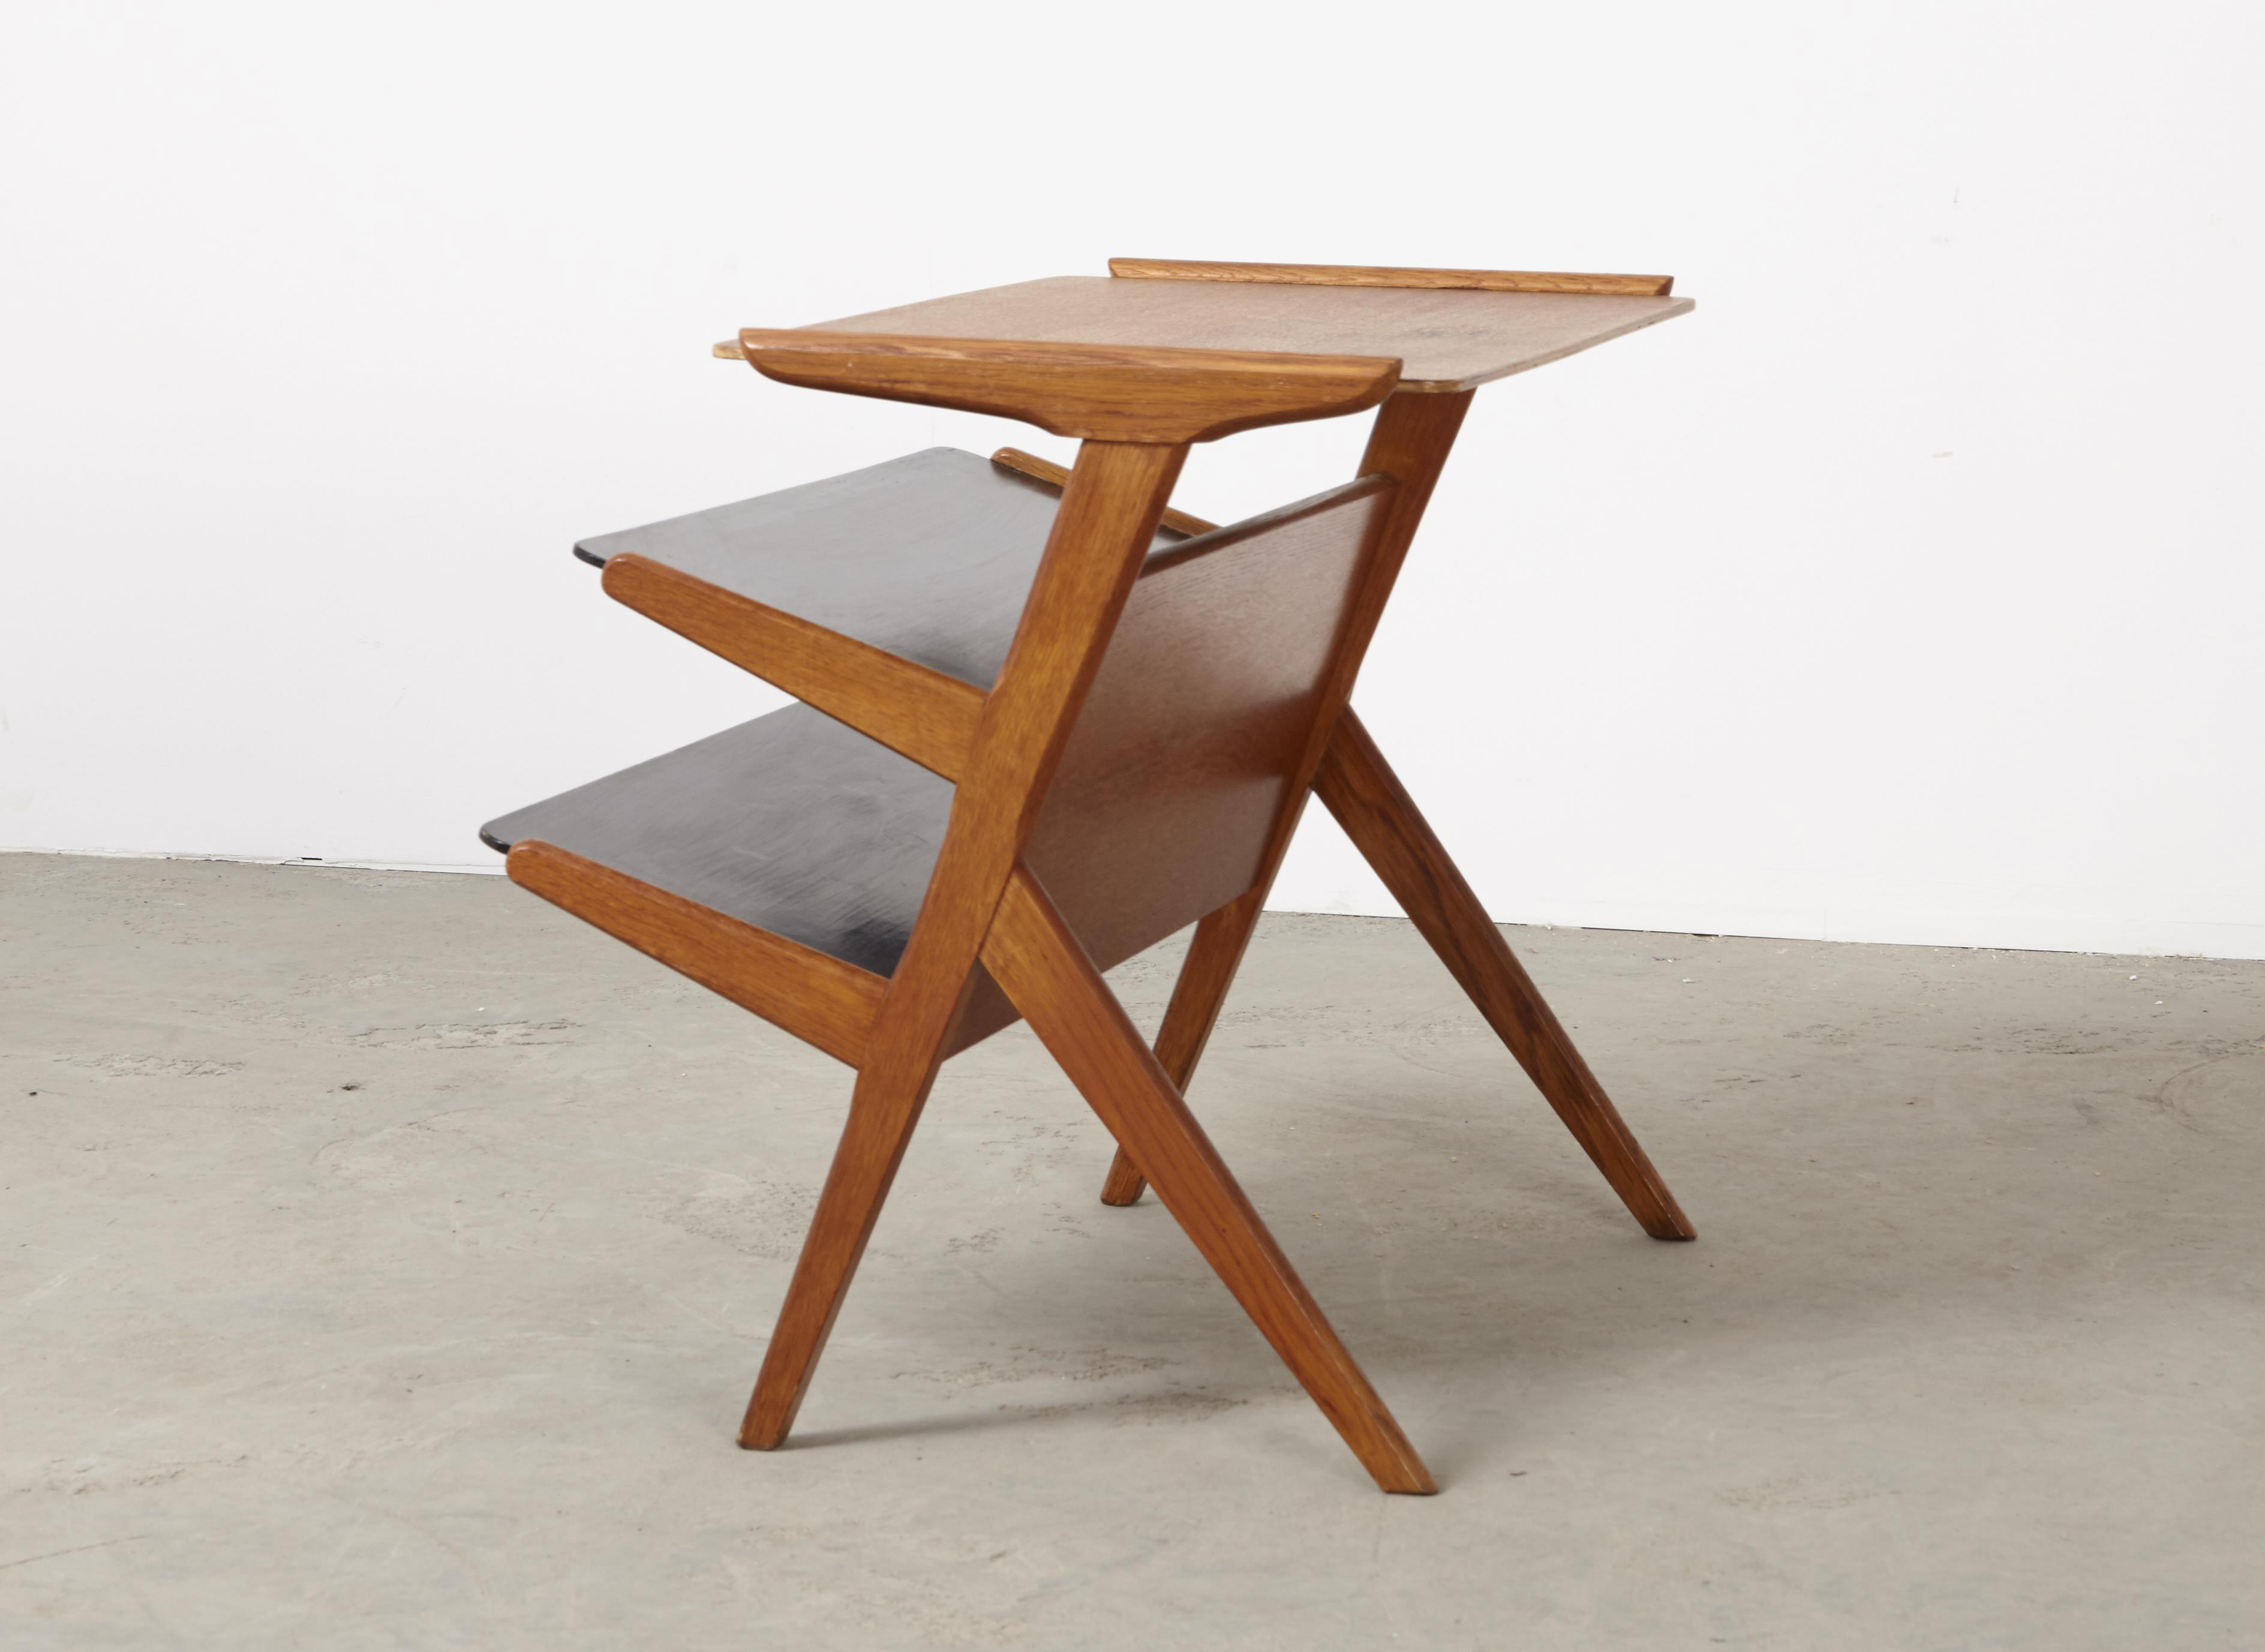 SOLD Wim den Boon (Attrib.) Groep & Side Table 1948